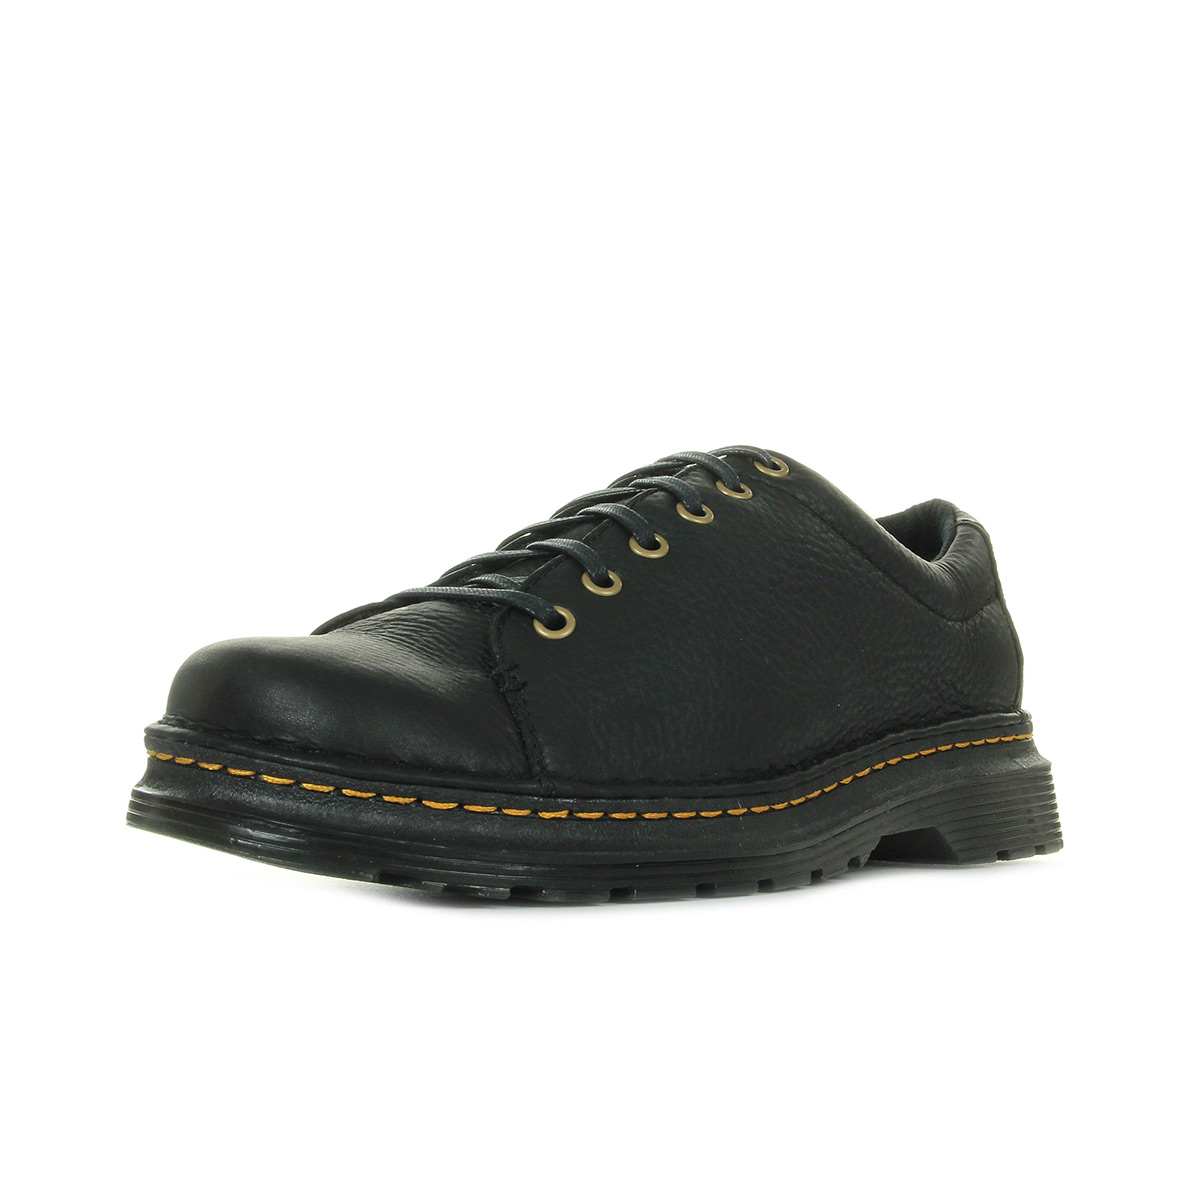 Boots Dr Martens Healy - 21094001 C3xZhO